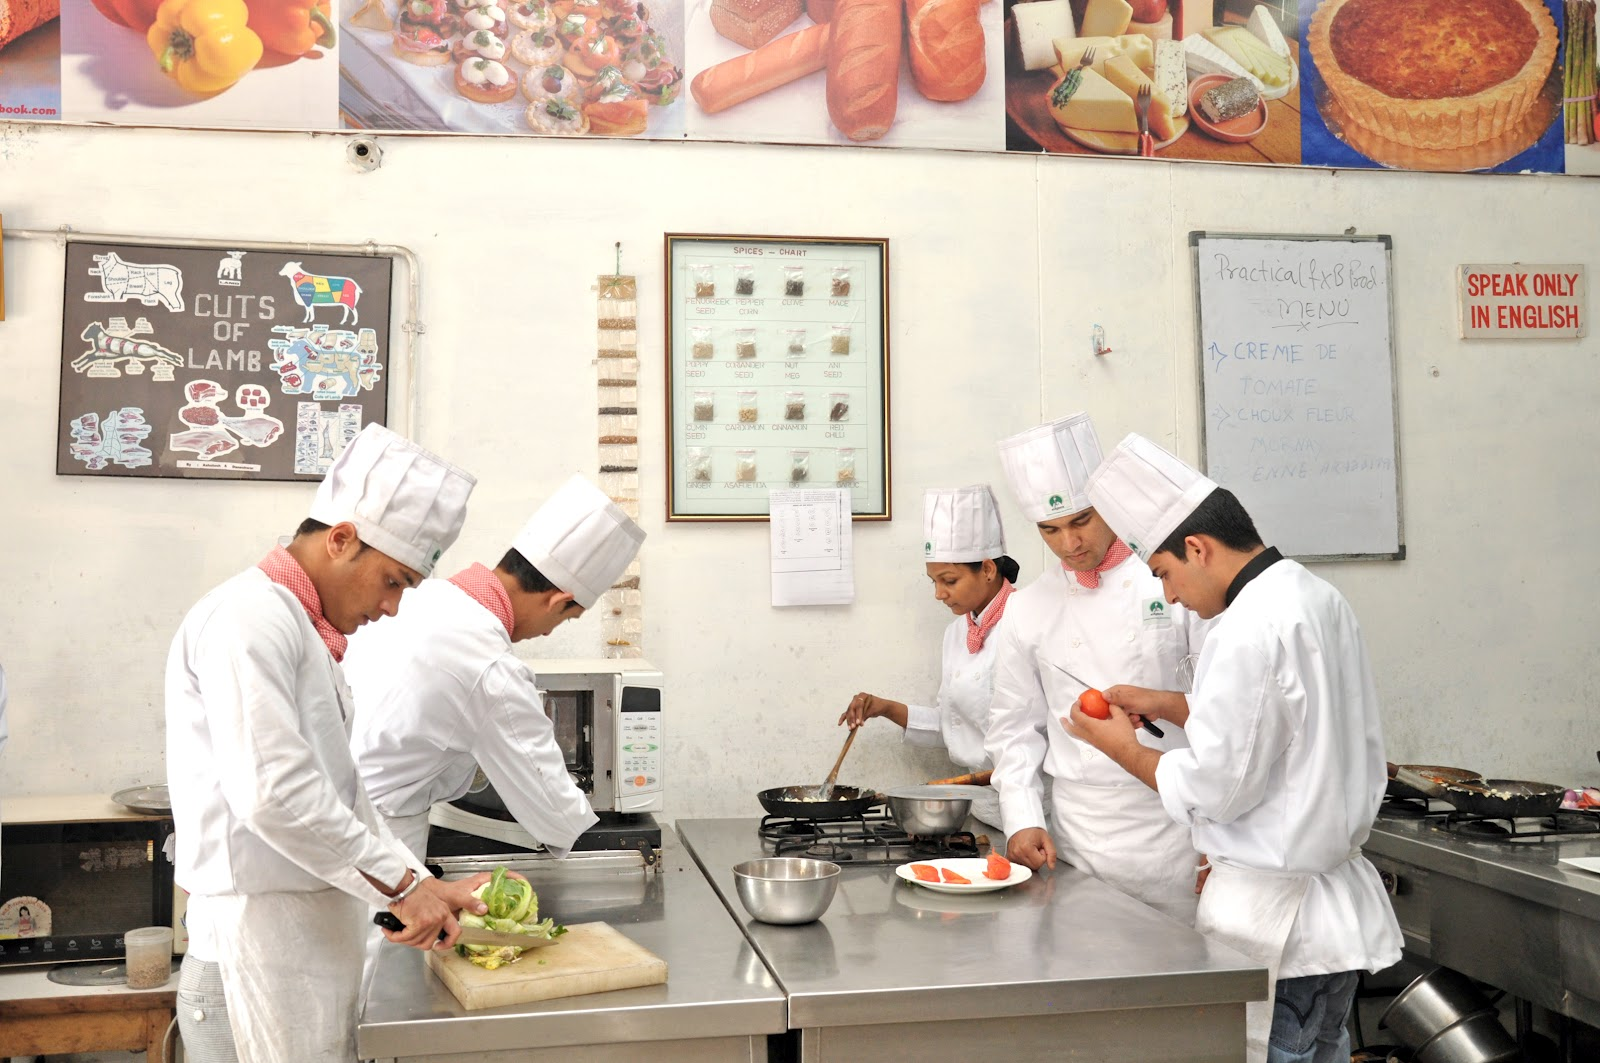 Allied Institute of Hotel Management and Culinary Arts (AIHMCA